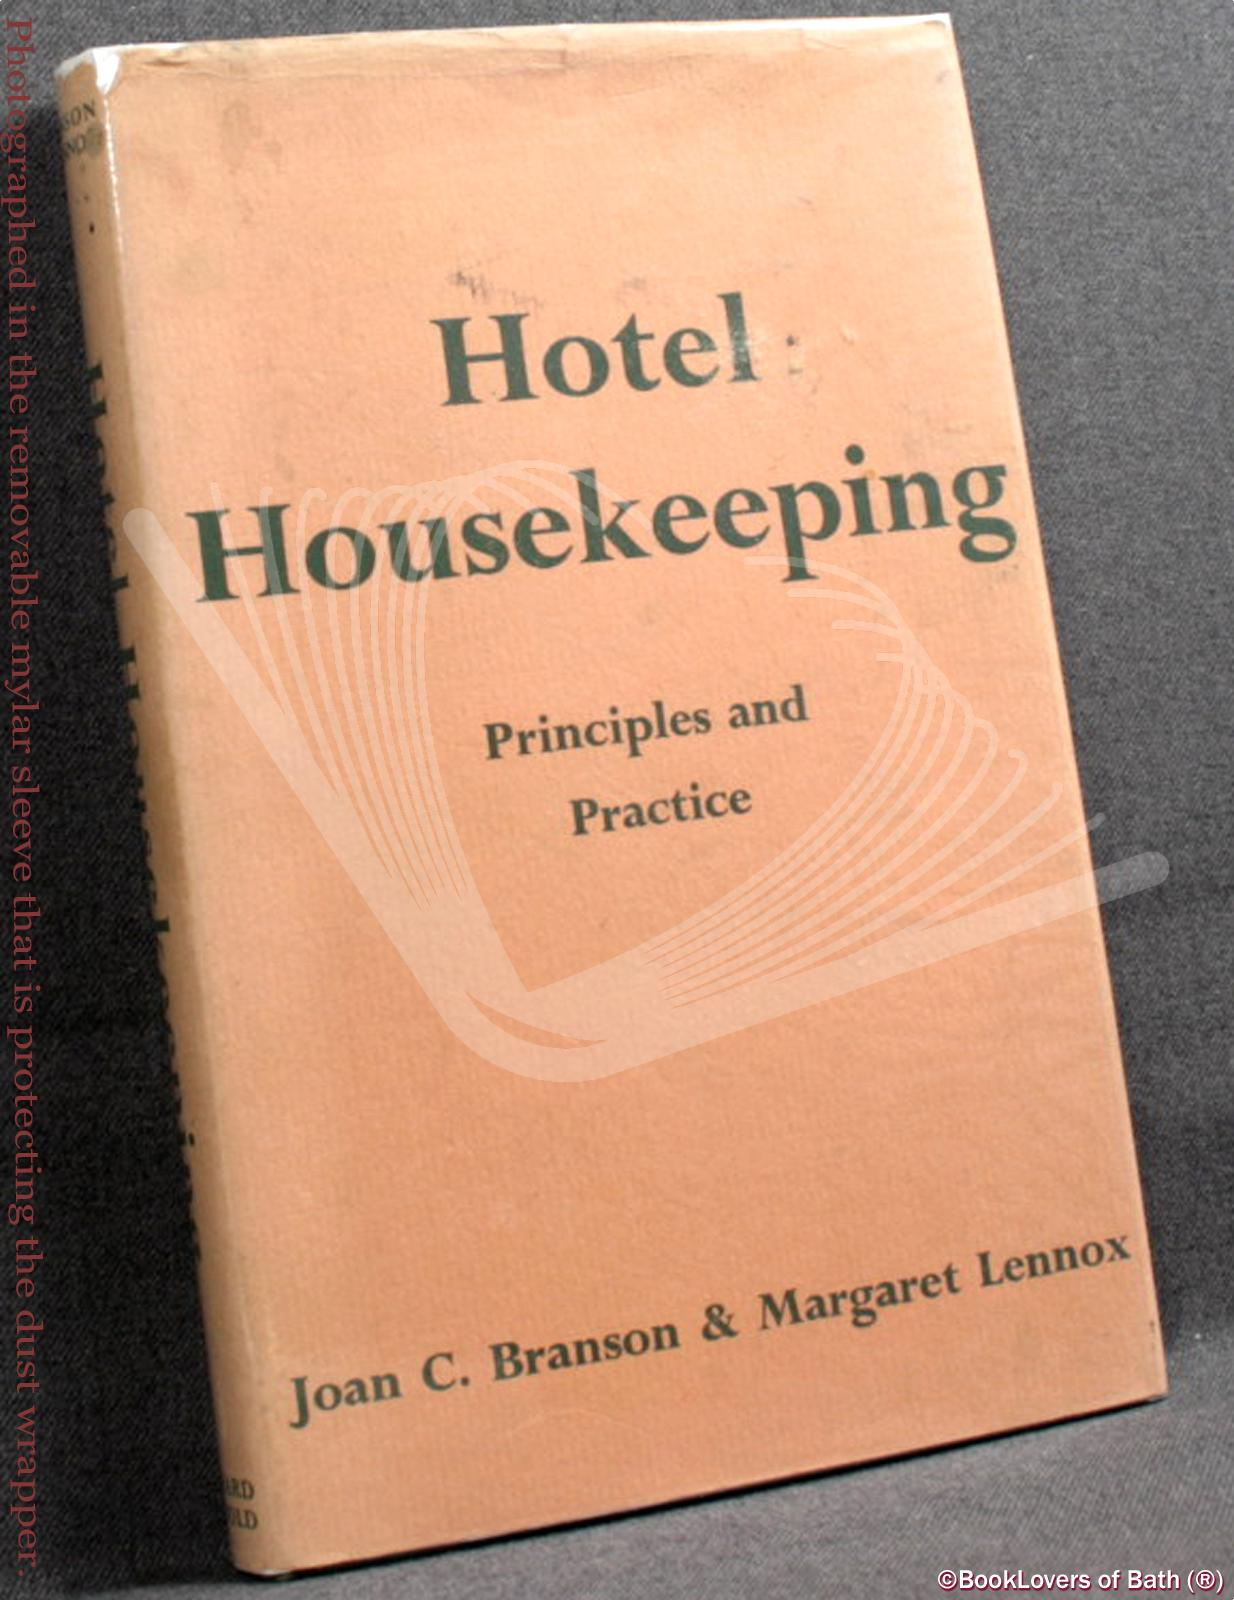 Hotel Housekeeping: Principles and Practice - Joan C Branson & Margaret Lennox